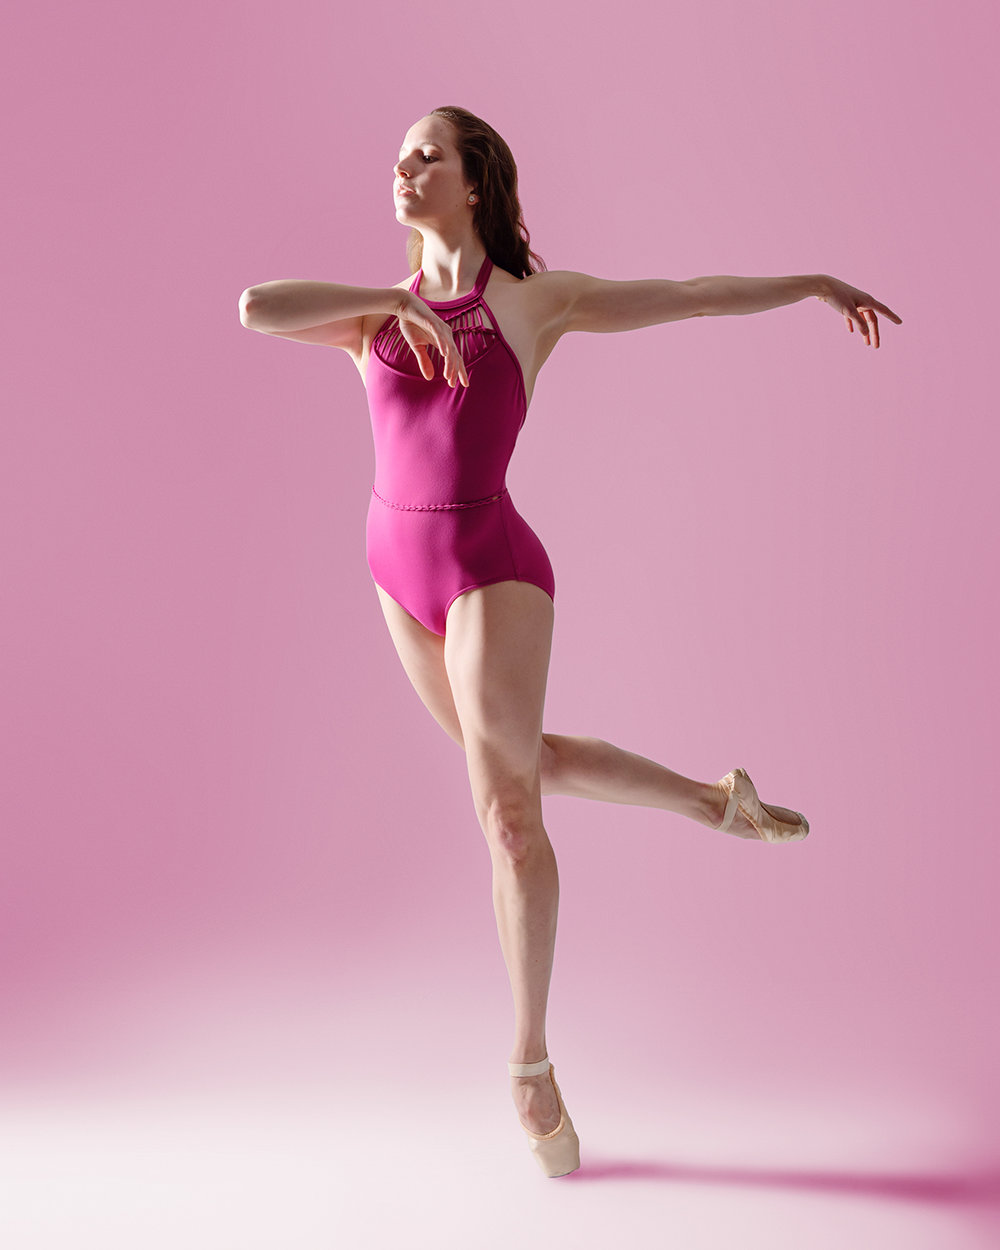 lauren_treat_ballet_dancer_pink.jpg